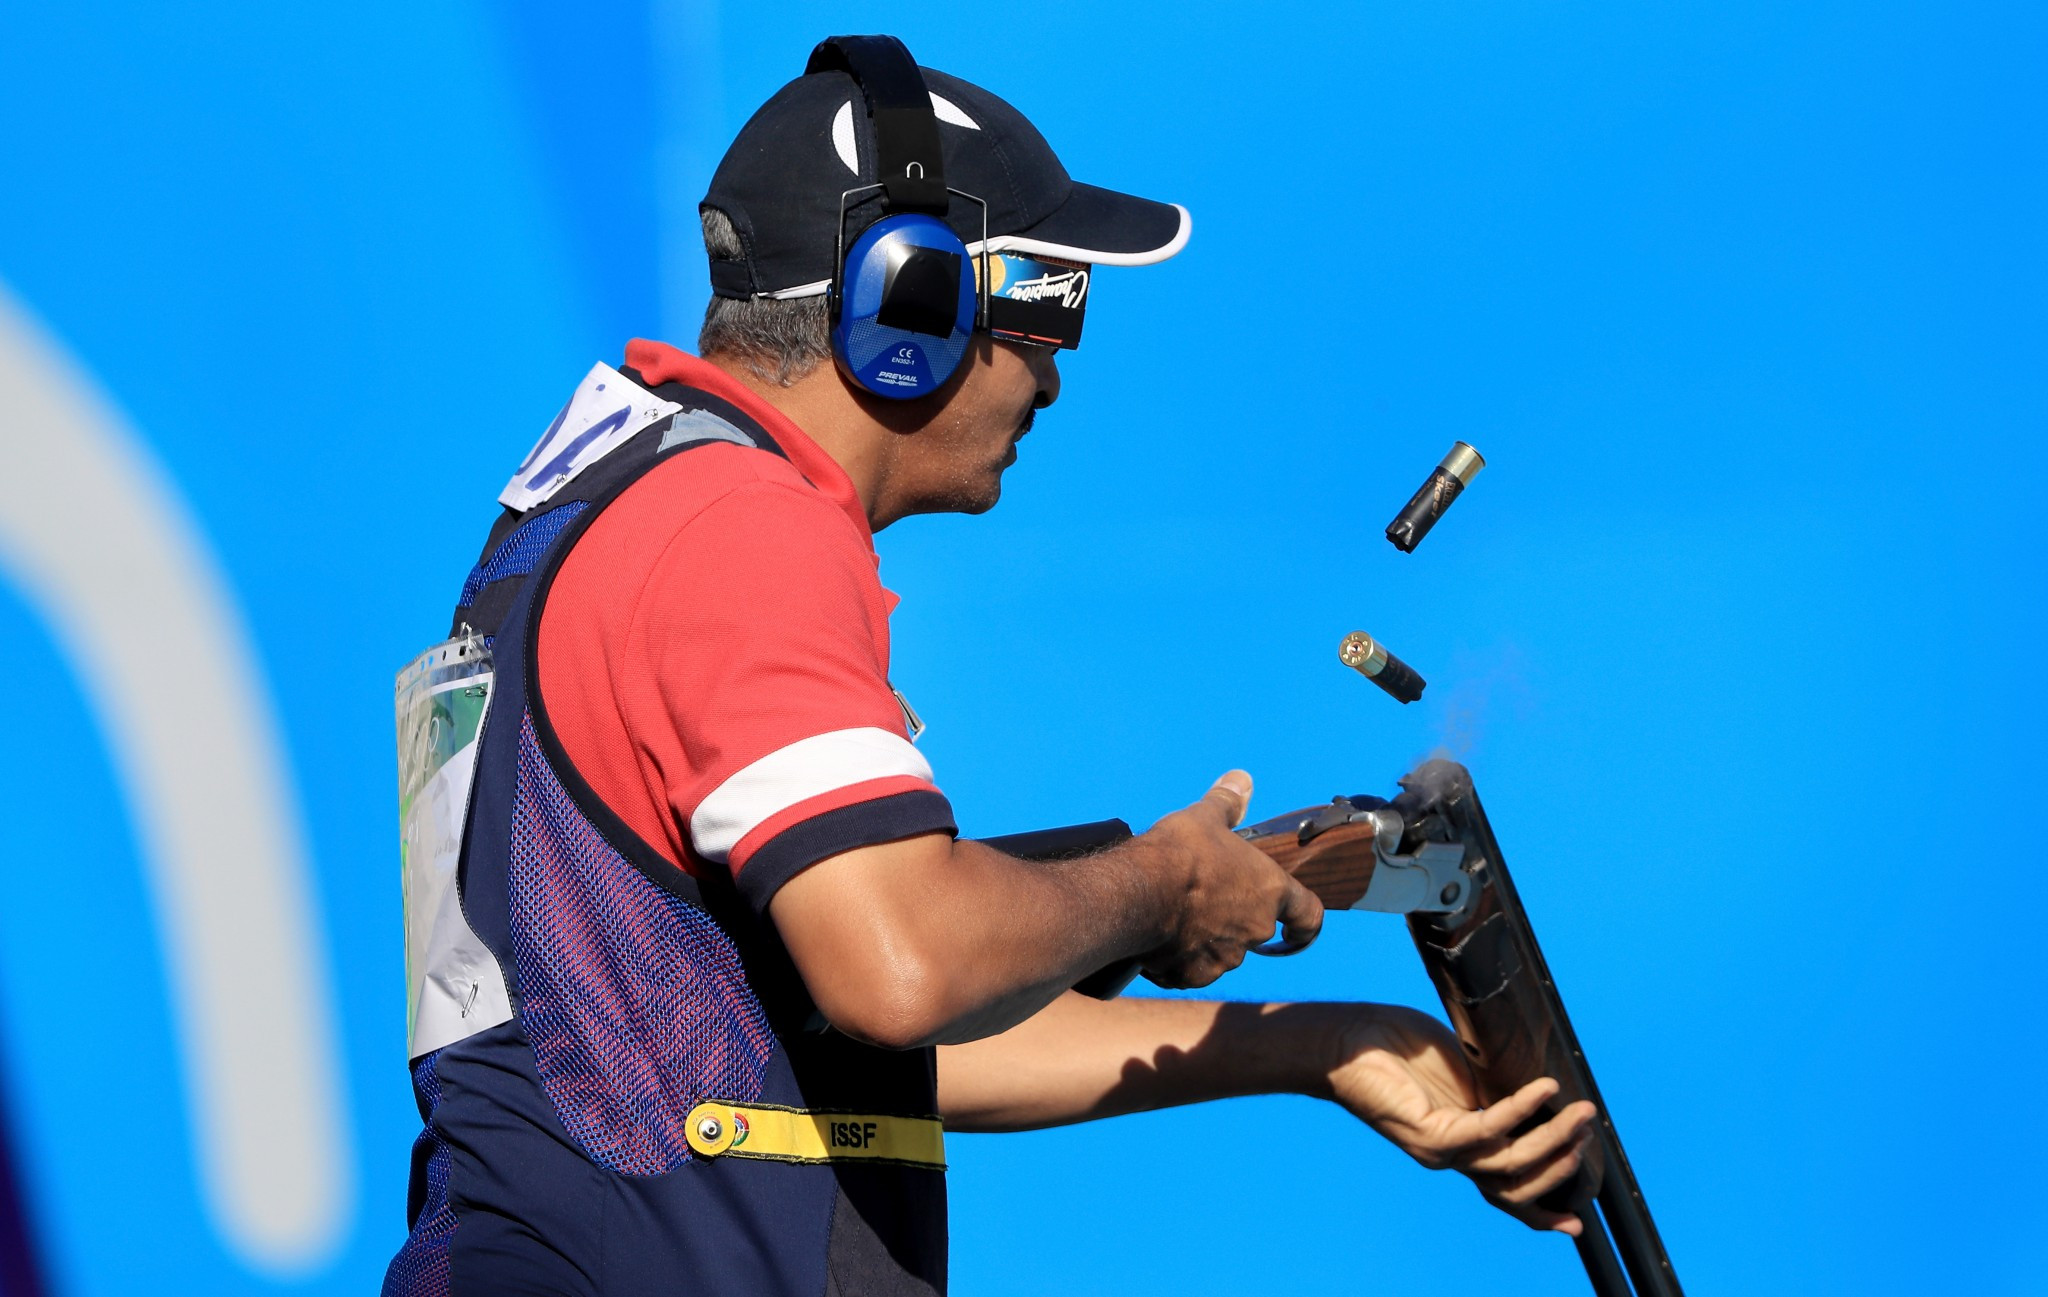 Rio 2016 bronze medallist Abdullah Al-Rashidi finished outside of the medal positions today ©Getty Images